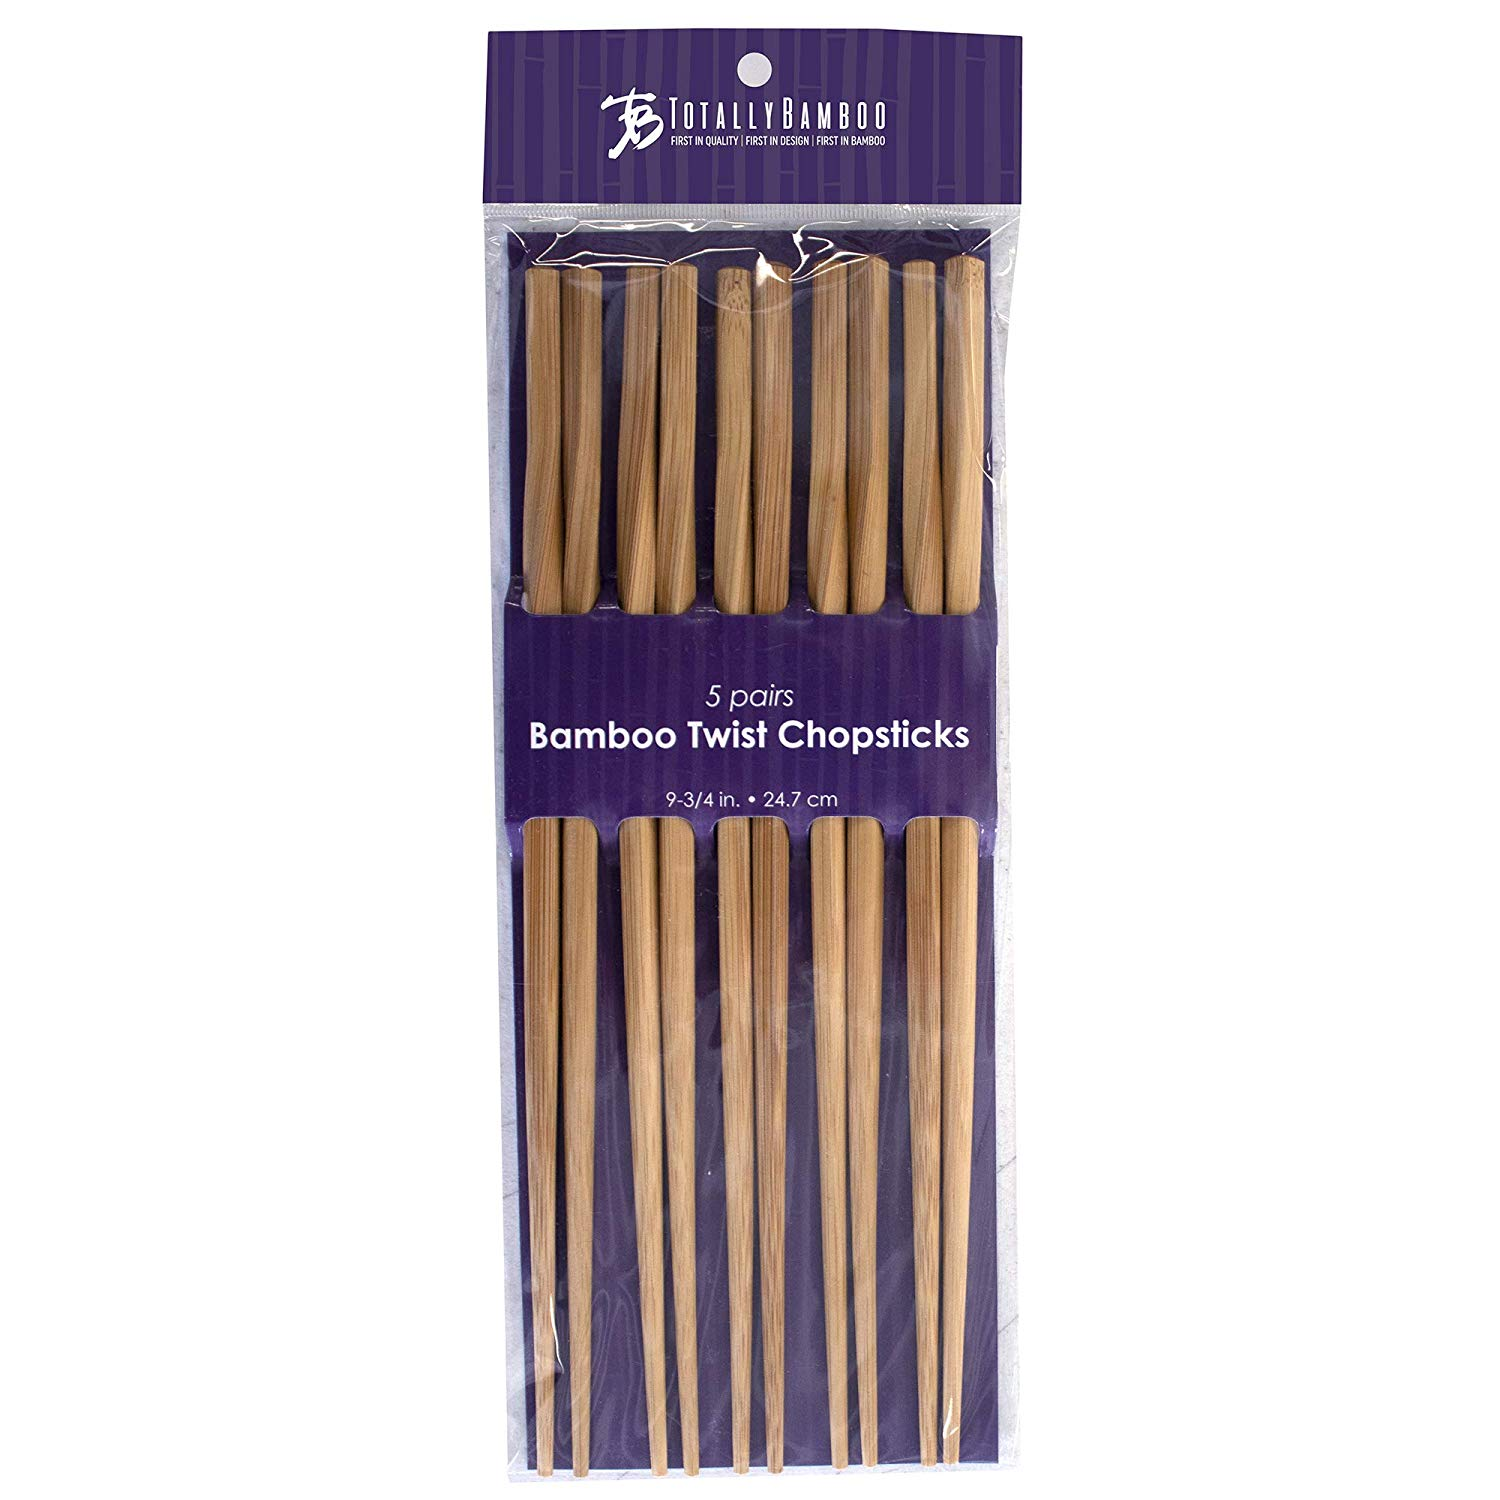 Totally bamboo reusable chopsticks